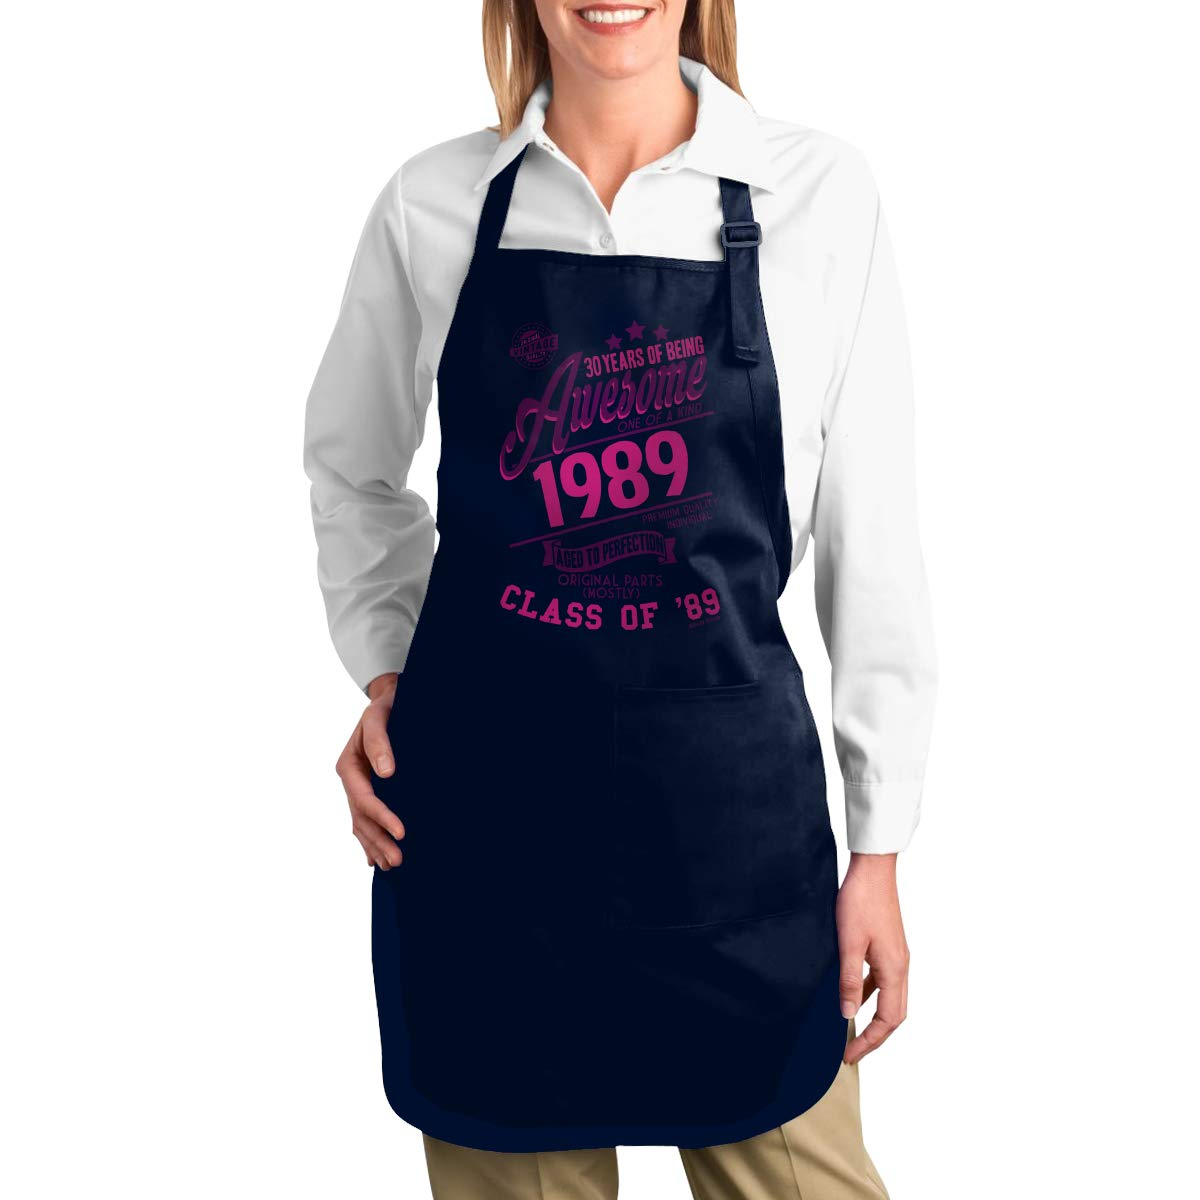 ZANGLUOJI Ladies Birthday 30 Years of Being Awesome 1989 Aged to Perfection Class of '89 Heavy Duty Canvas Work Apron,Tool Pockets, Back Straps Adjustable